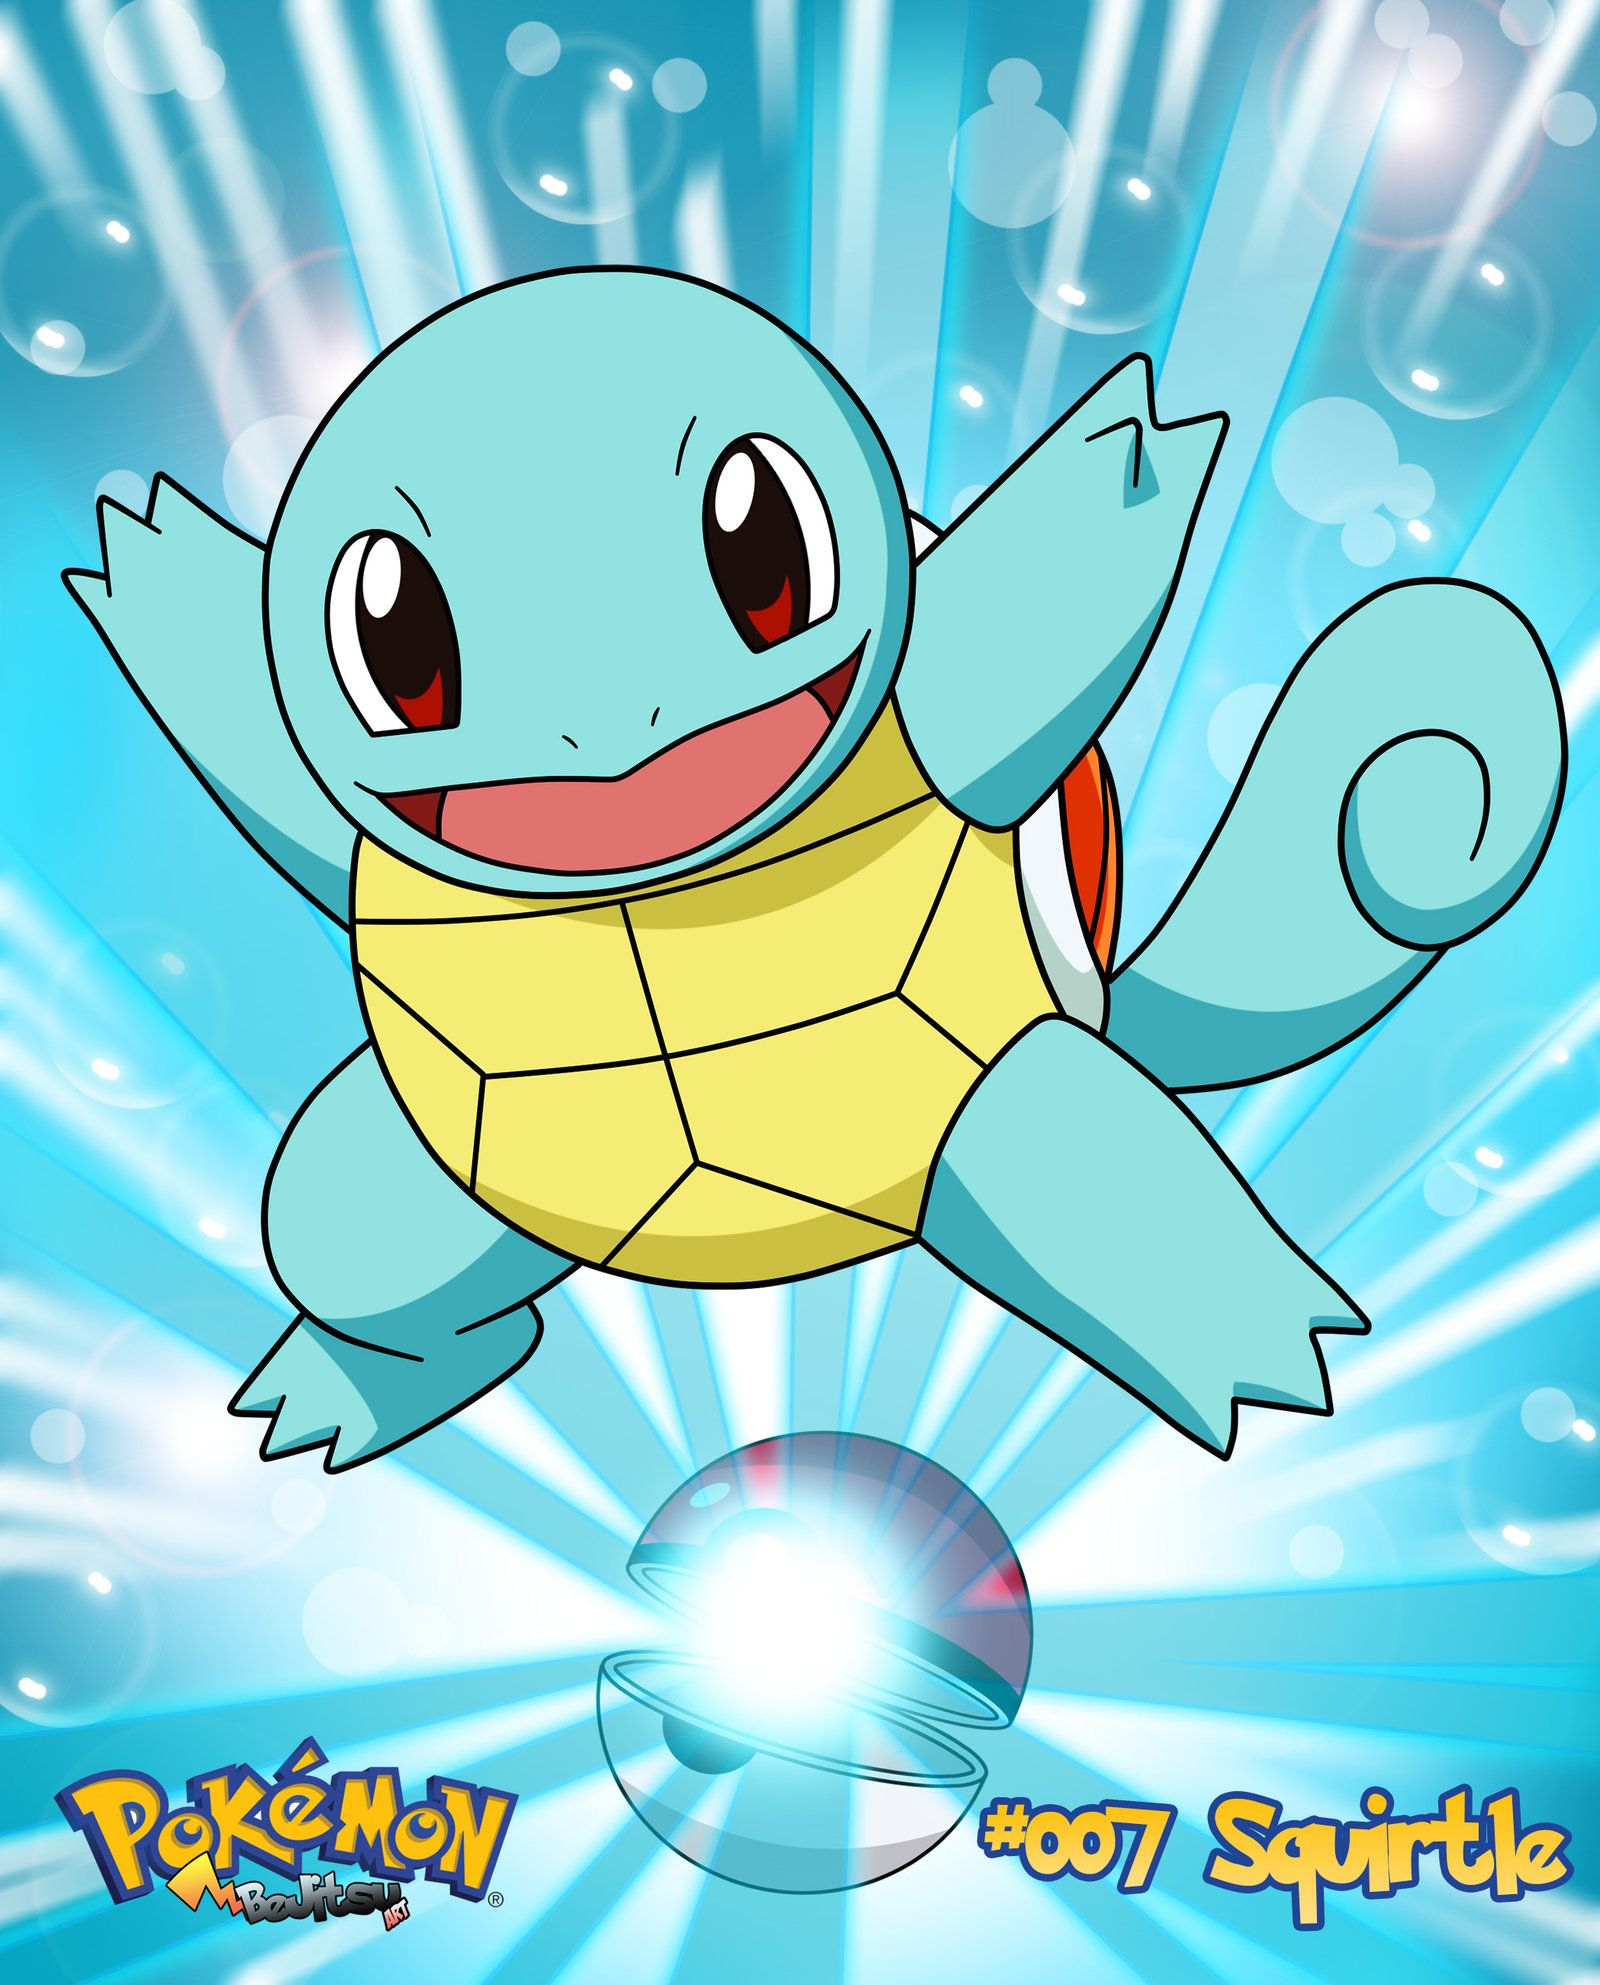 squirtle used to be the leader of a gang known as the squirtle